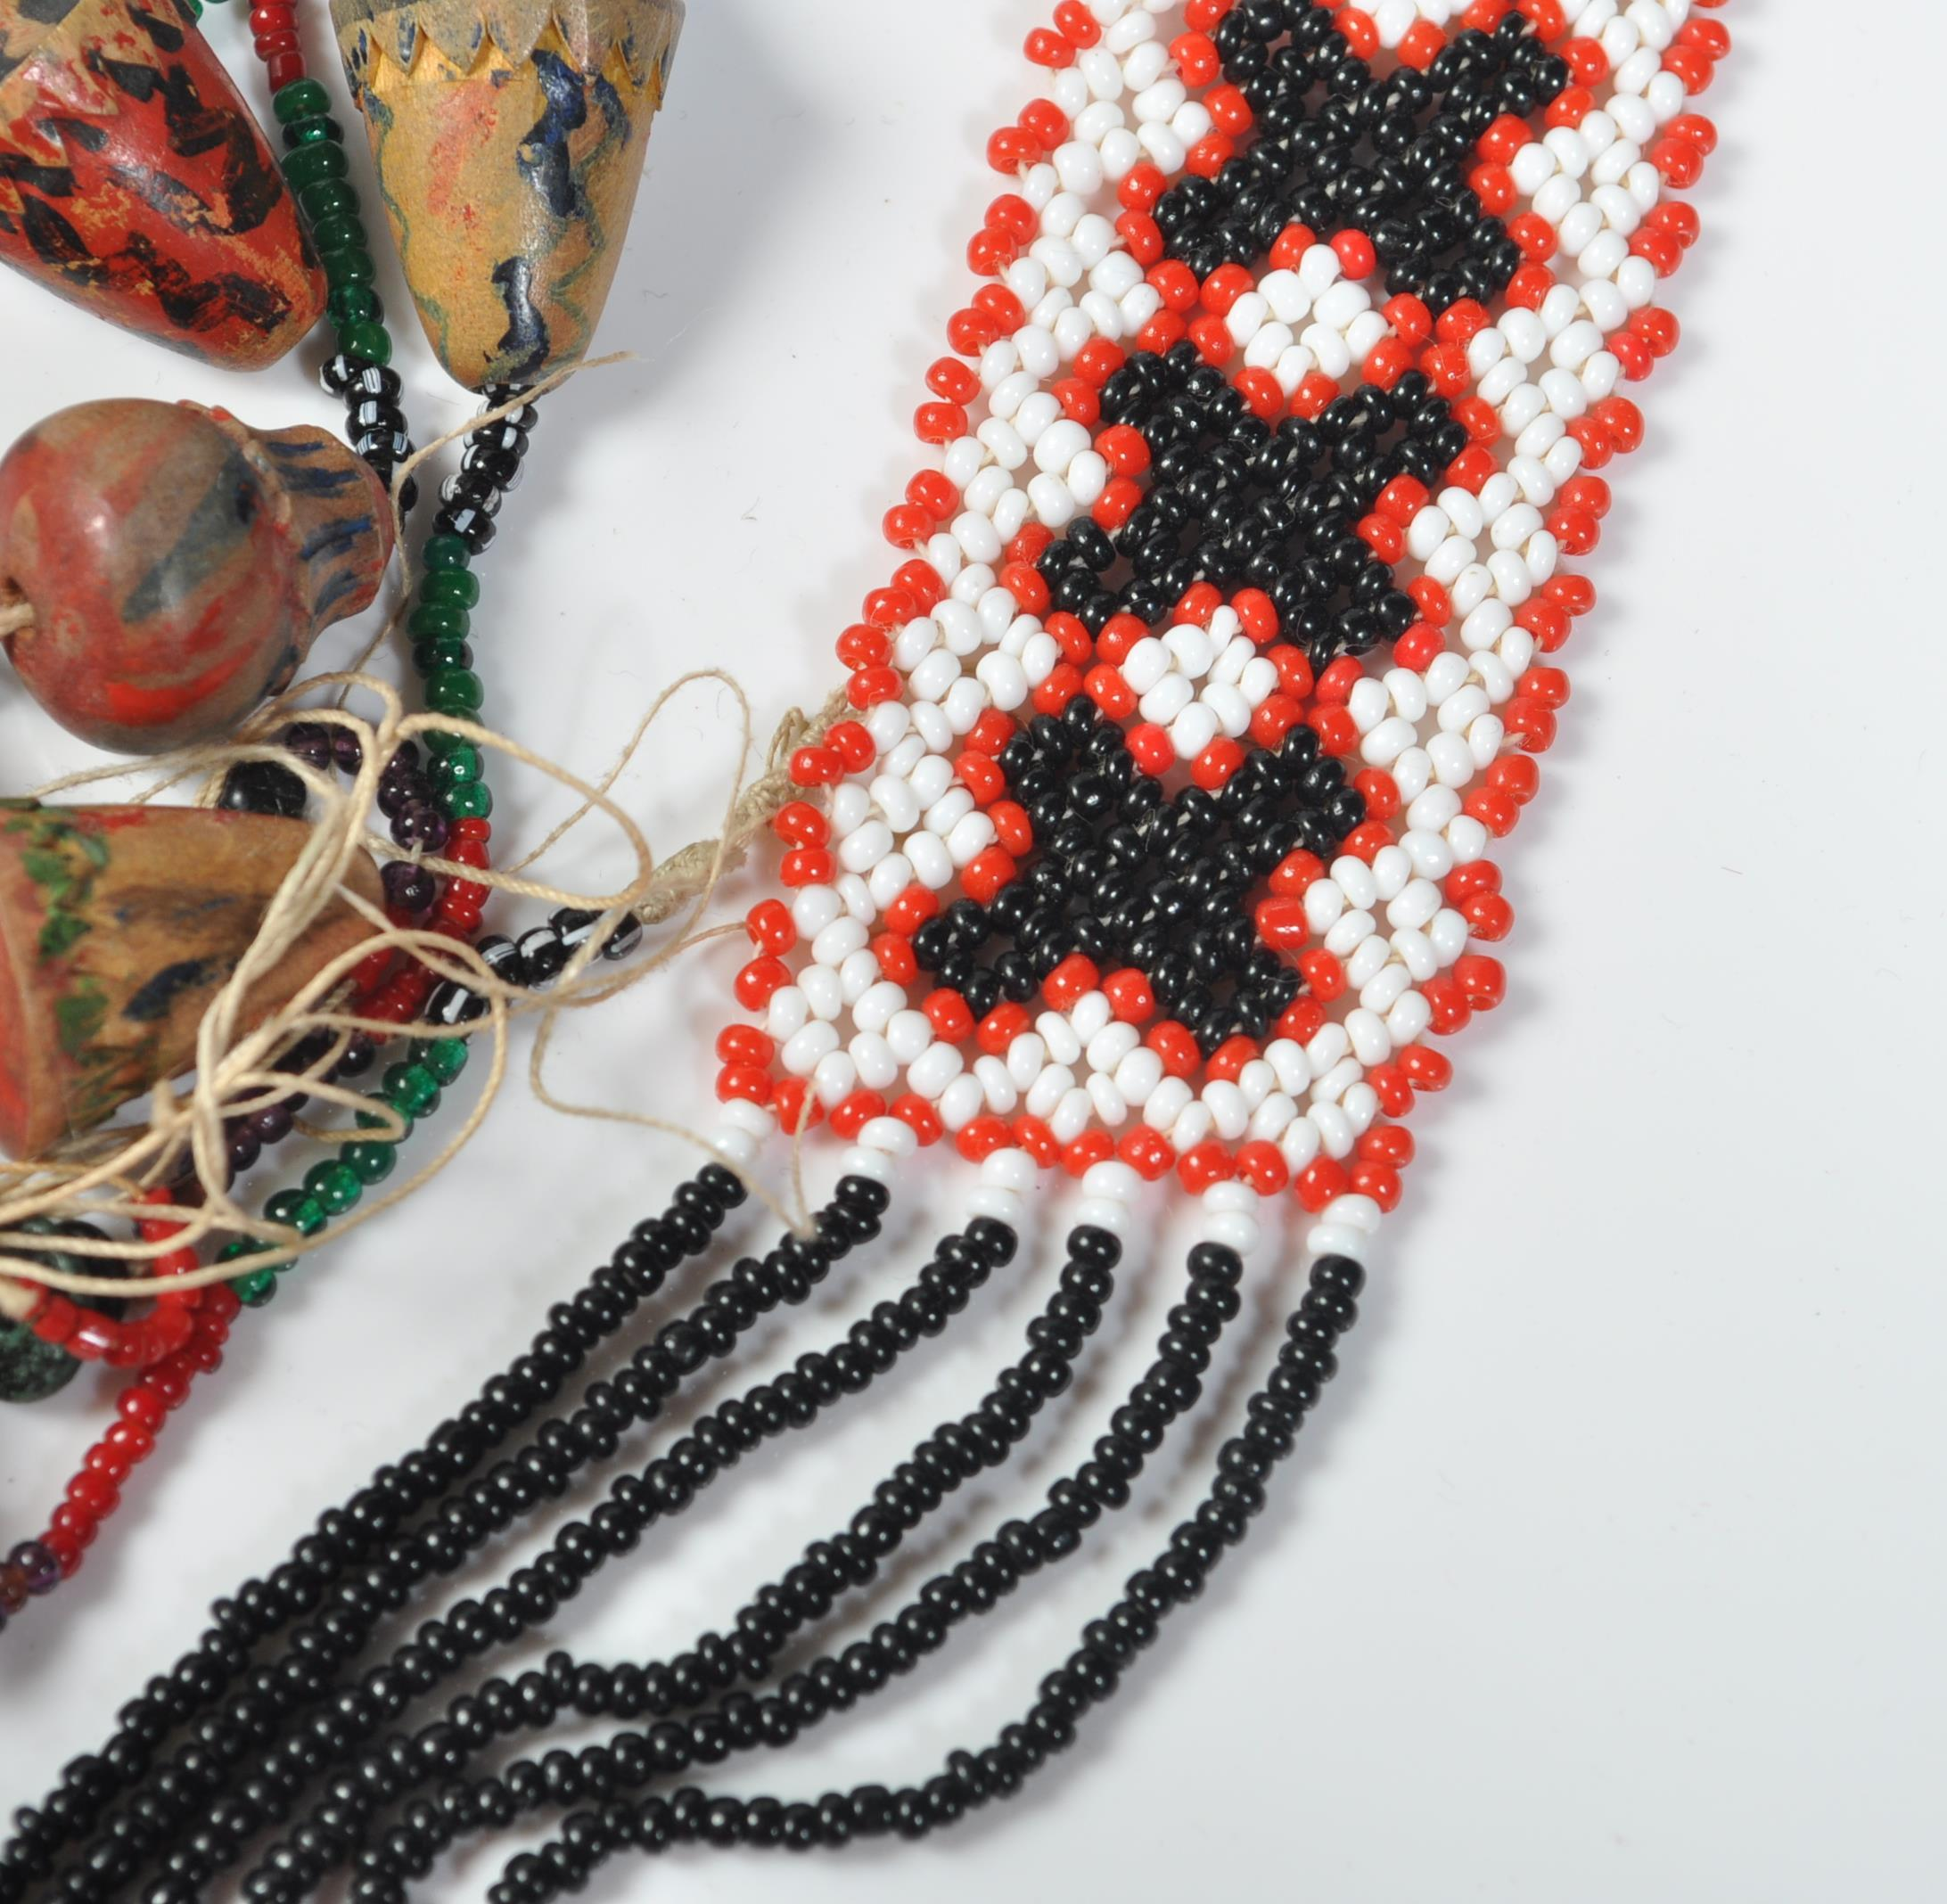 COLLECTION OF ZULU AFRICAN AND NATIVE AMERCIAN JEWELLERY. - Image 7 of 9